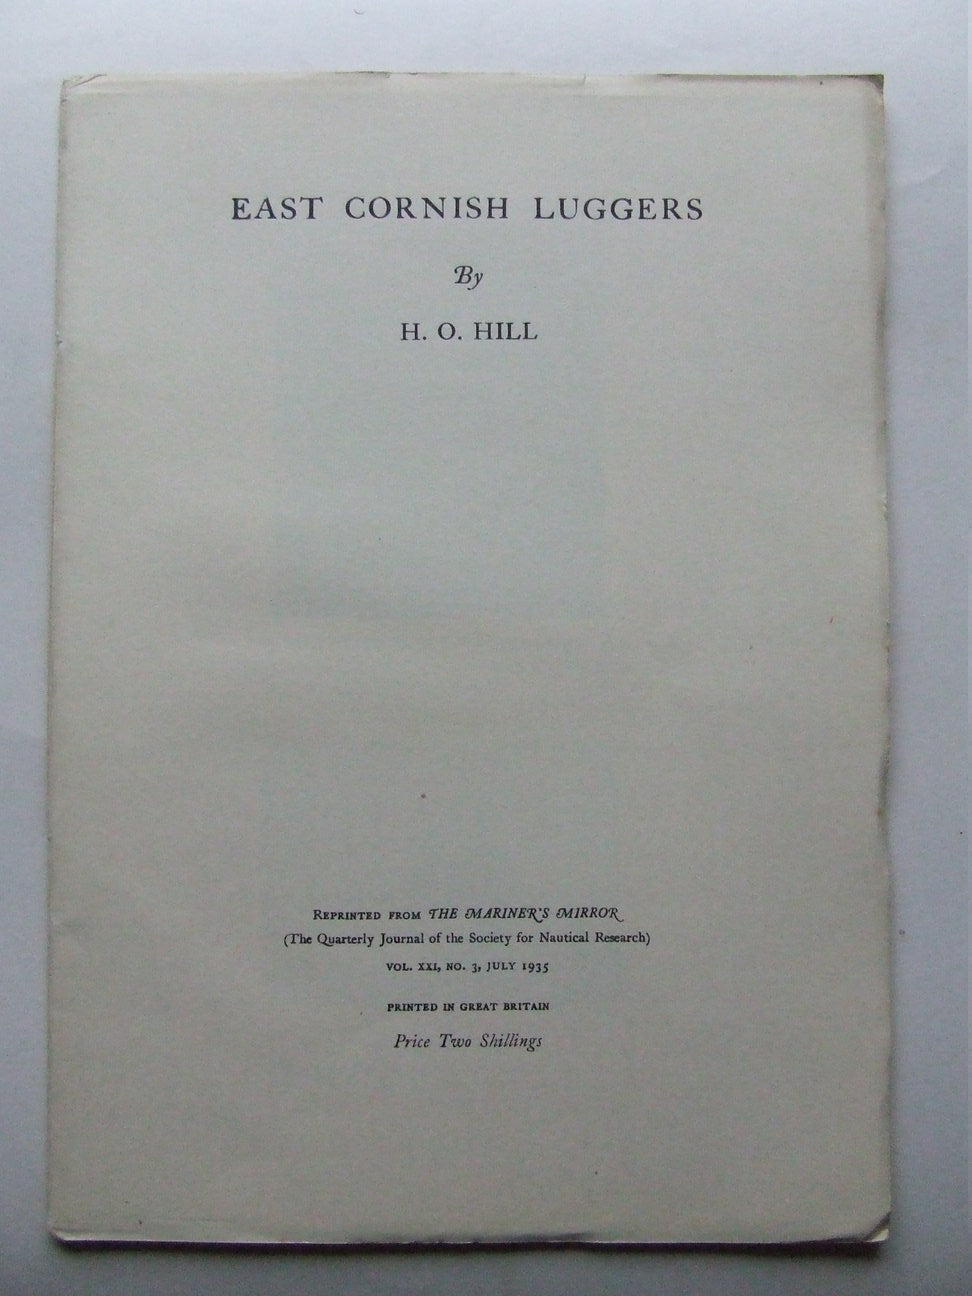 East Cornish Luggers